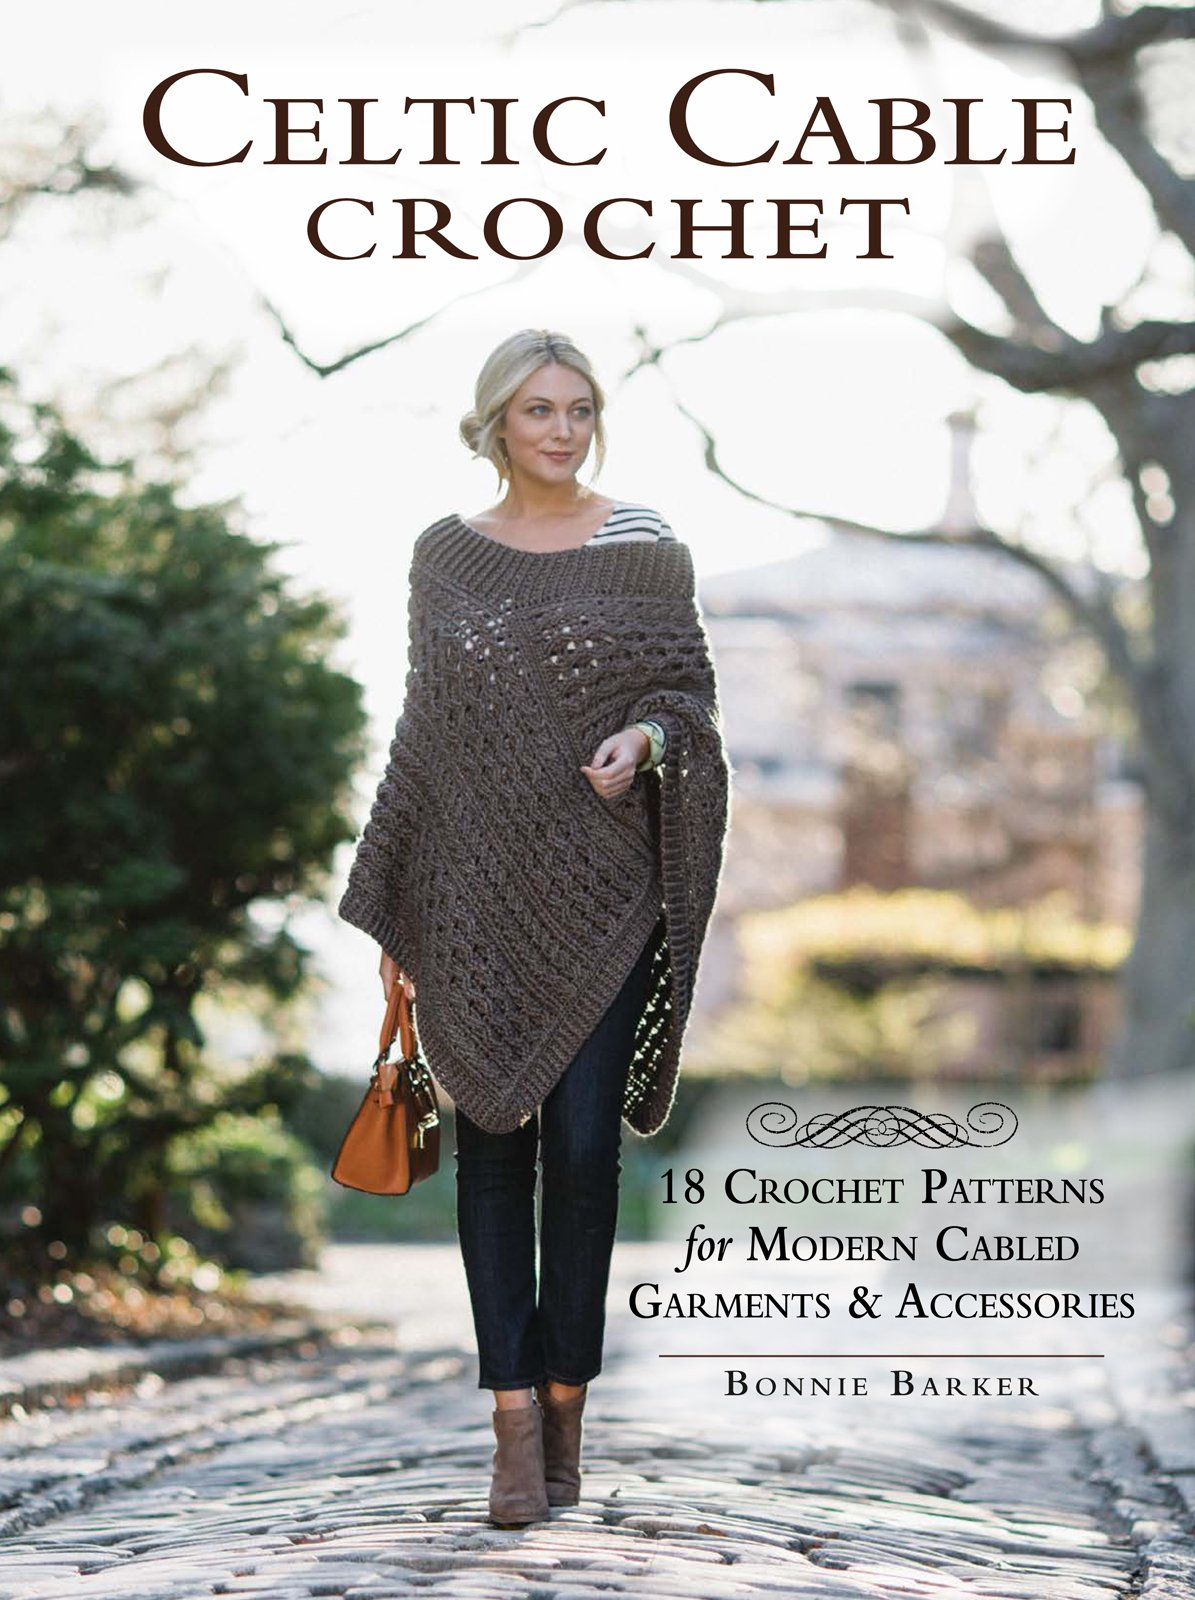 Celtic Cable Crochet: 18 Crochet Patterns for Modern Cabled Garments ...